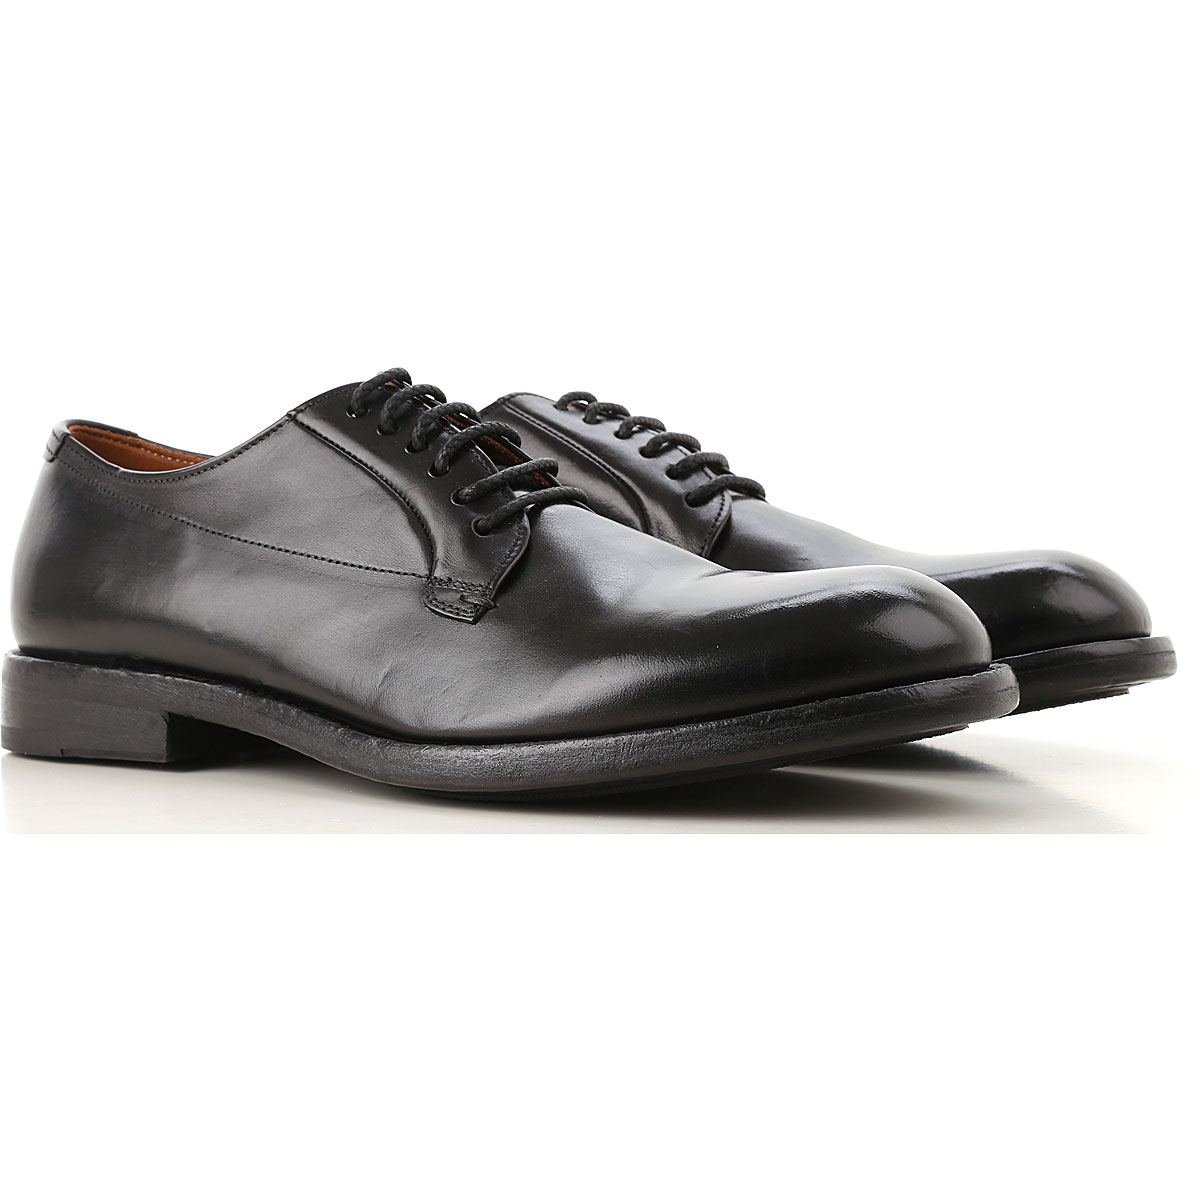 Image of Pantanetti Lace Up Shoes for Men Oxfords, Derbies and Brogues, Black, Leather, 2017, 10 10.5 8 9